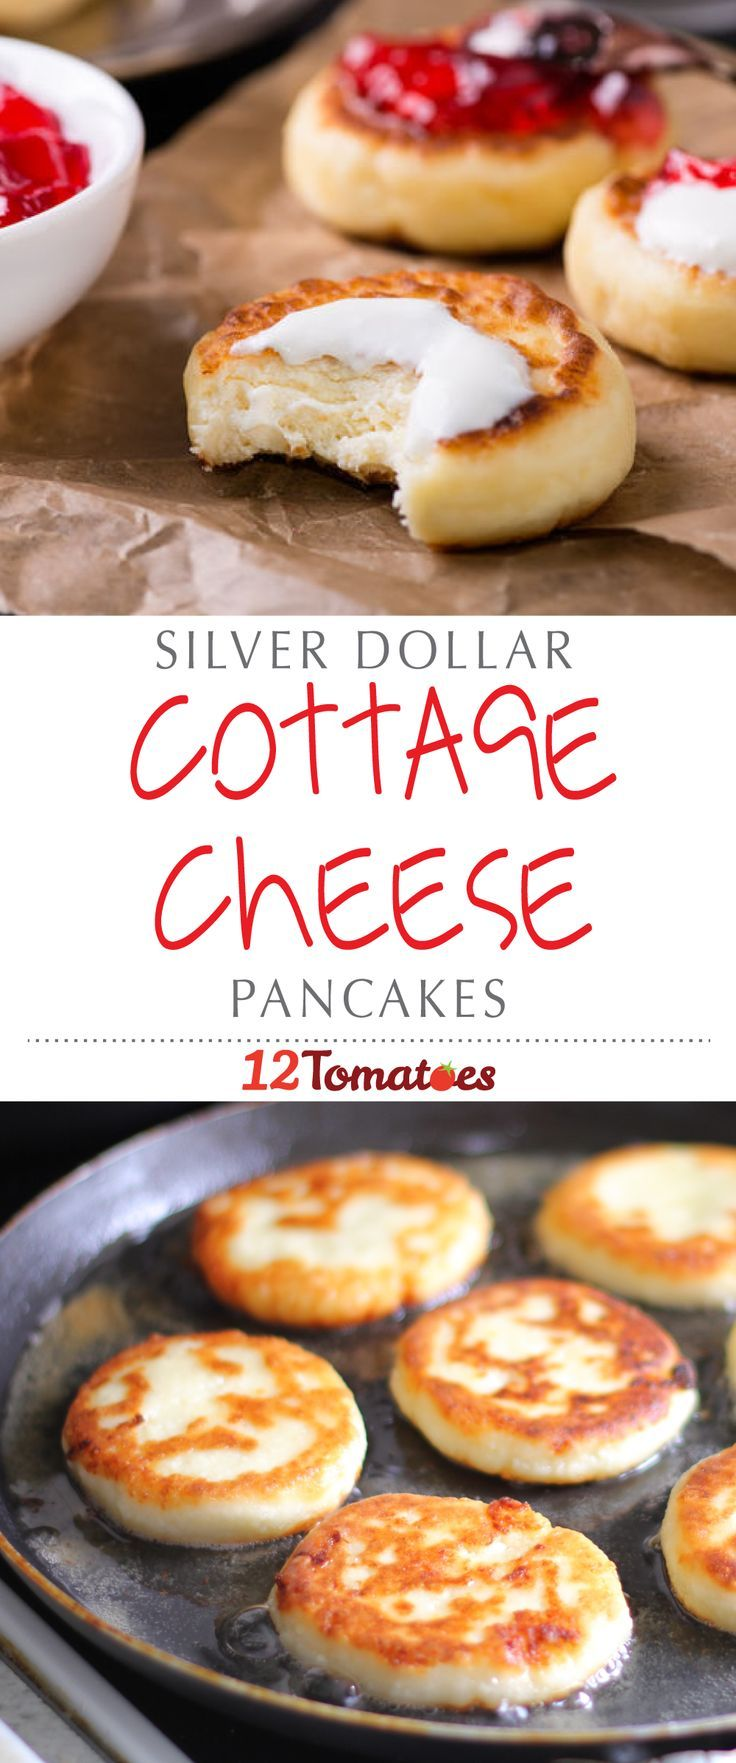 Silver Dollar Cottage Cheese Pancakes   Thatu0027s Right, Stuffed With Protein Packed  Cottage Cheese